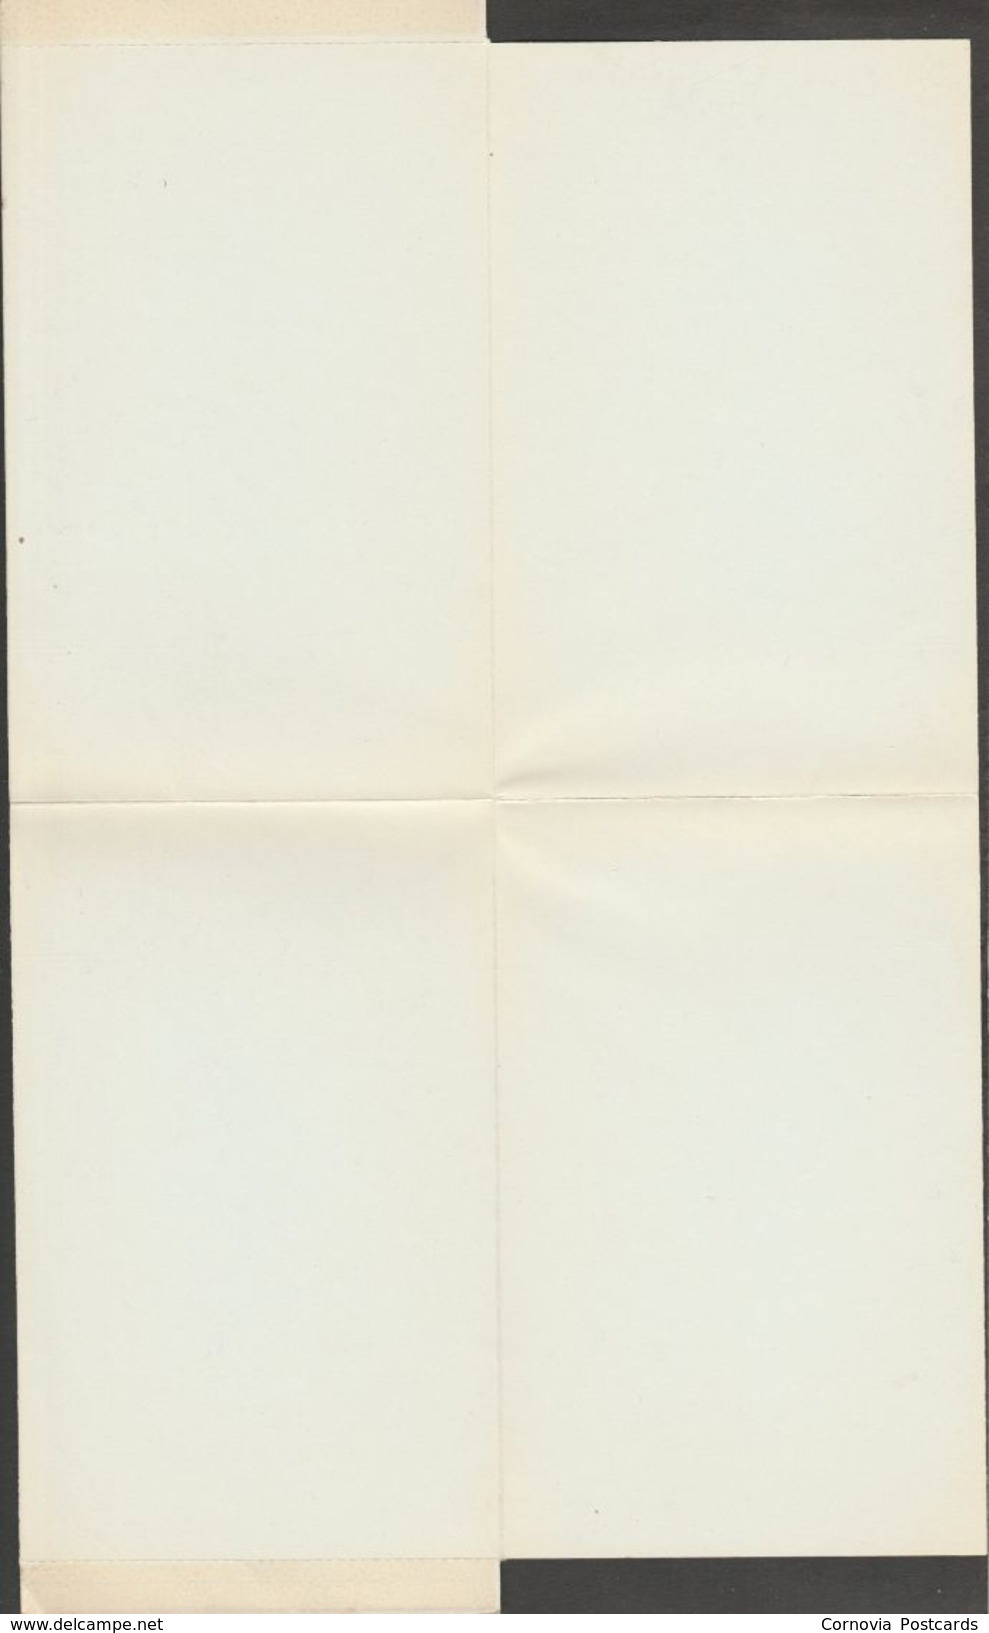 Greetings From The Canadian Rockies, Alberta, Canada, 1958 - Evergreen-Gibbons Lettersheet - Unclassified